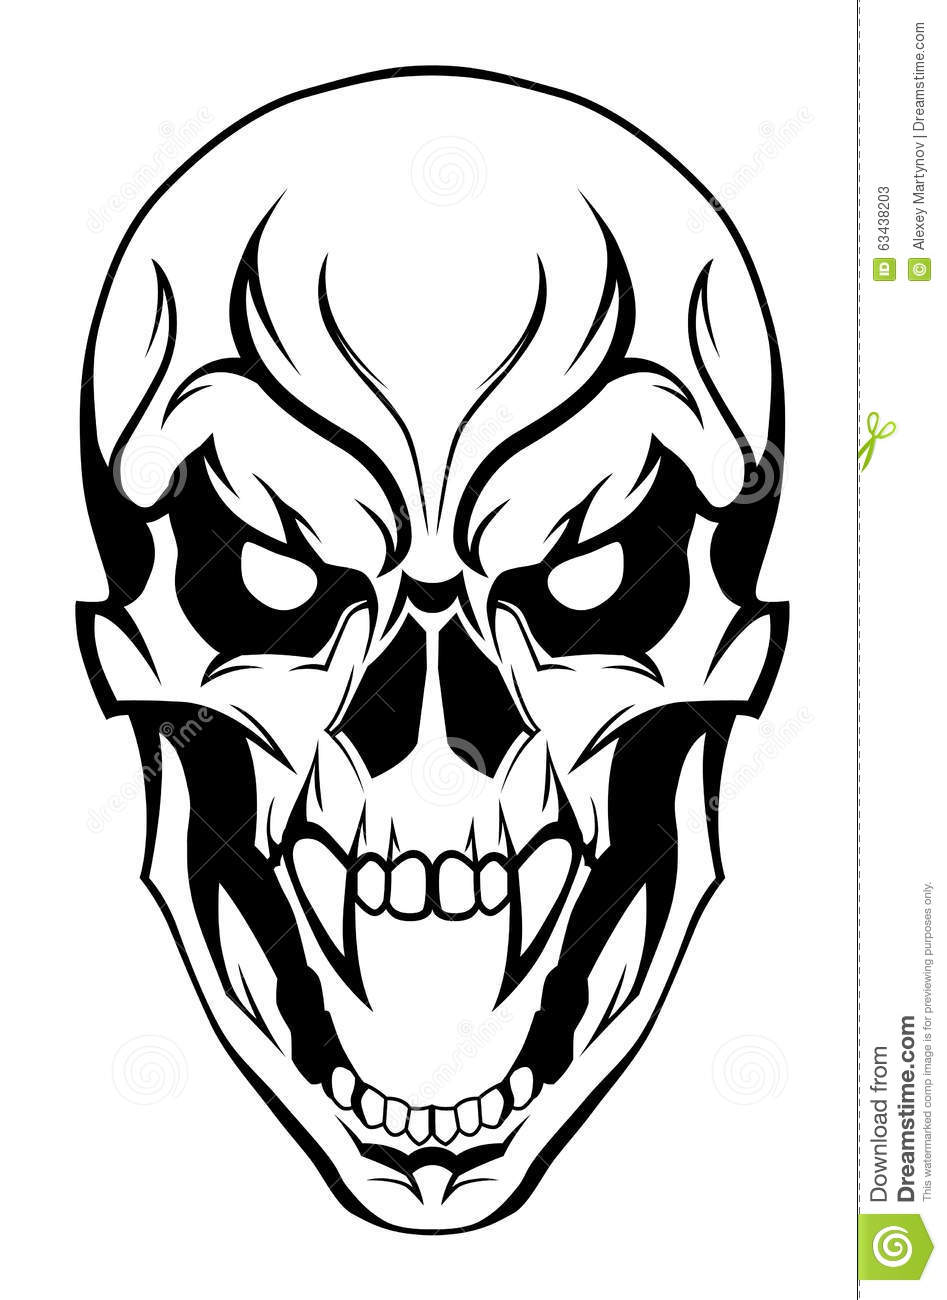 4ed7fbc06 Evil skull stock vector. Illustration of fear, scary - 63438203